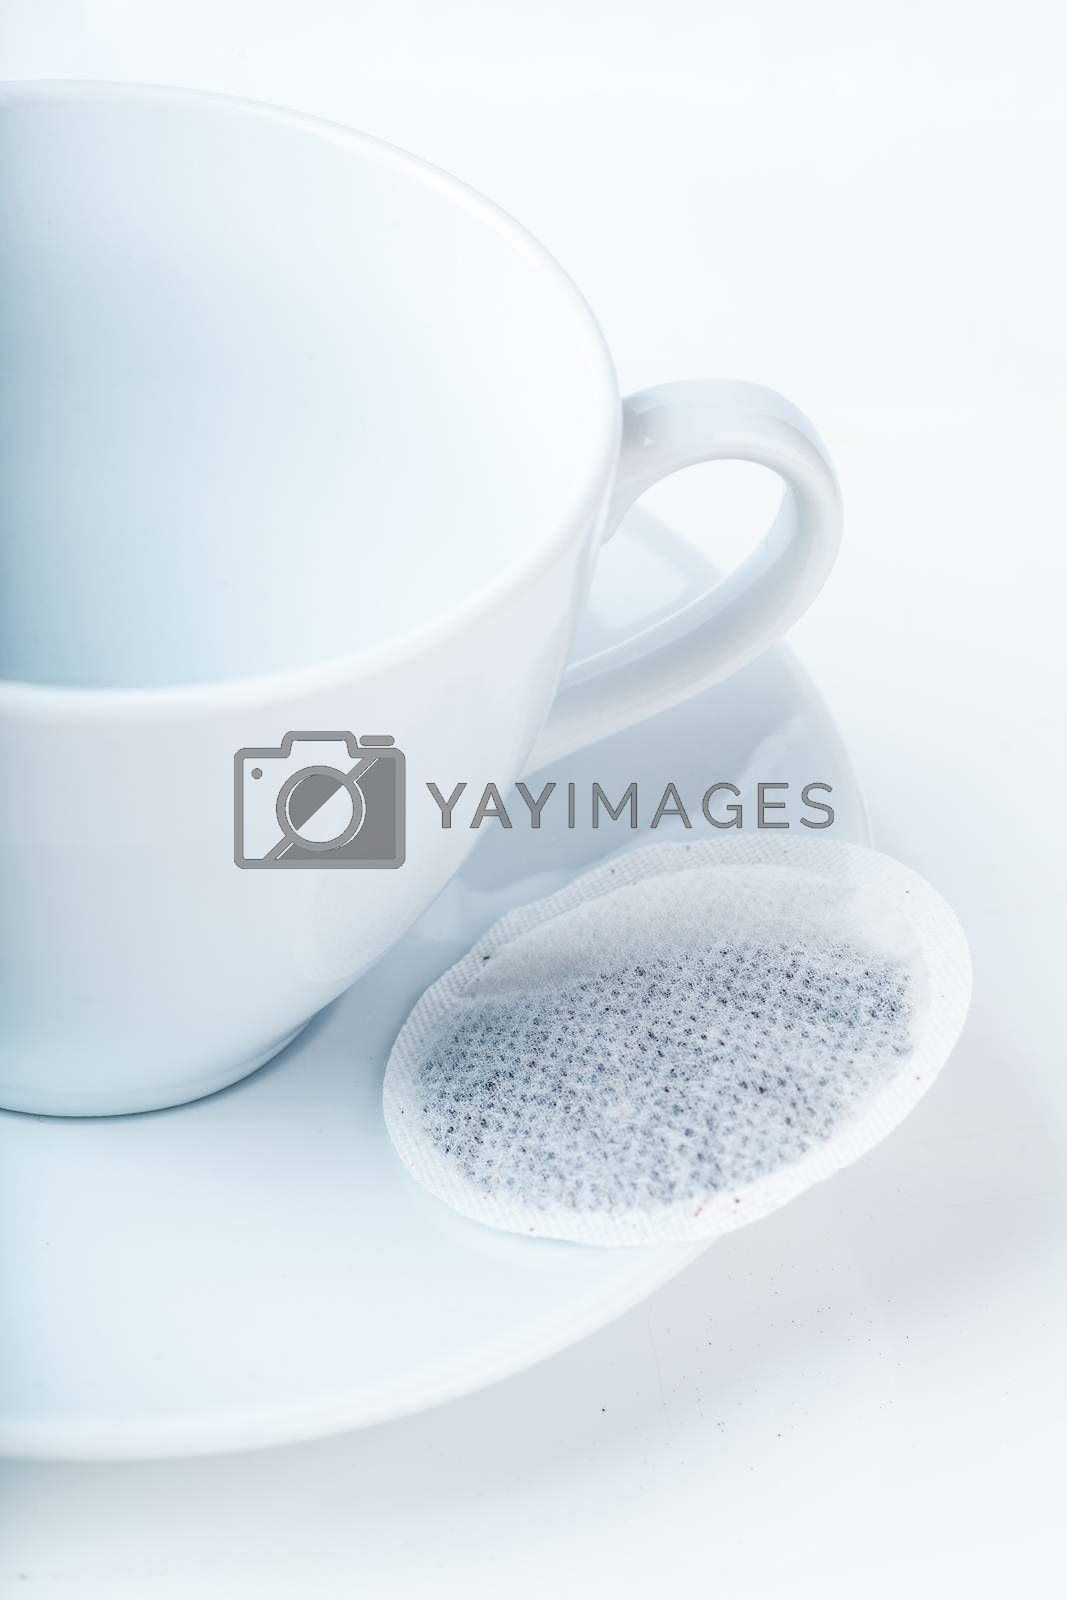 Closeup view of empty cup and teabag on a plate